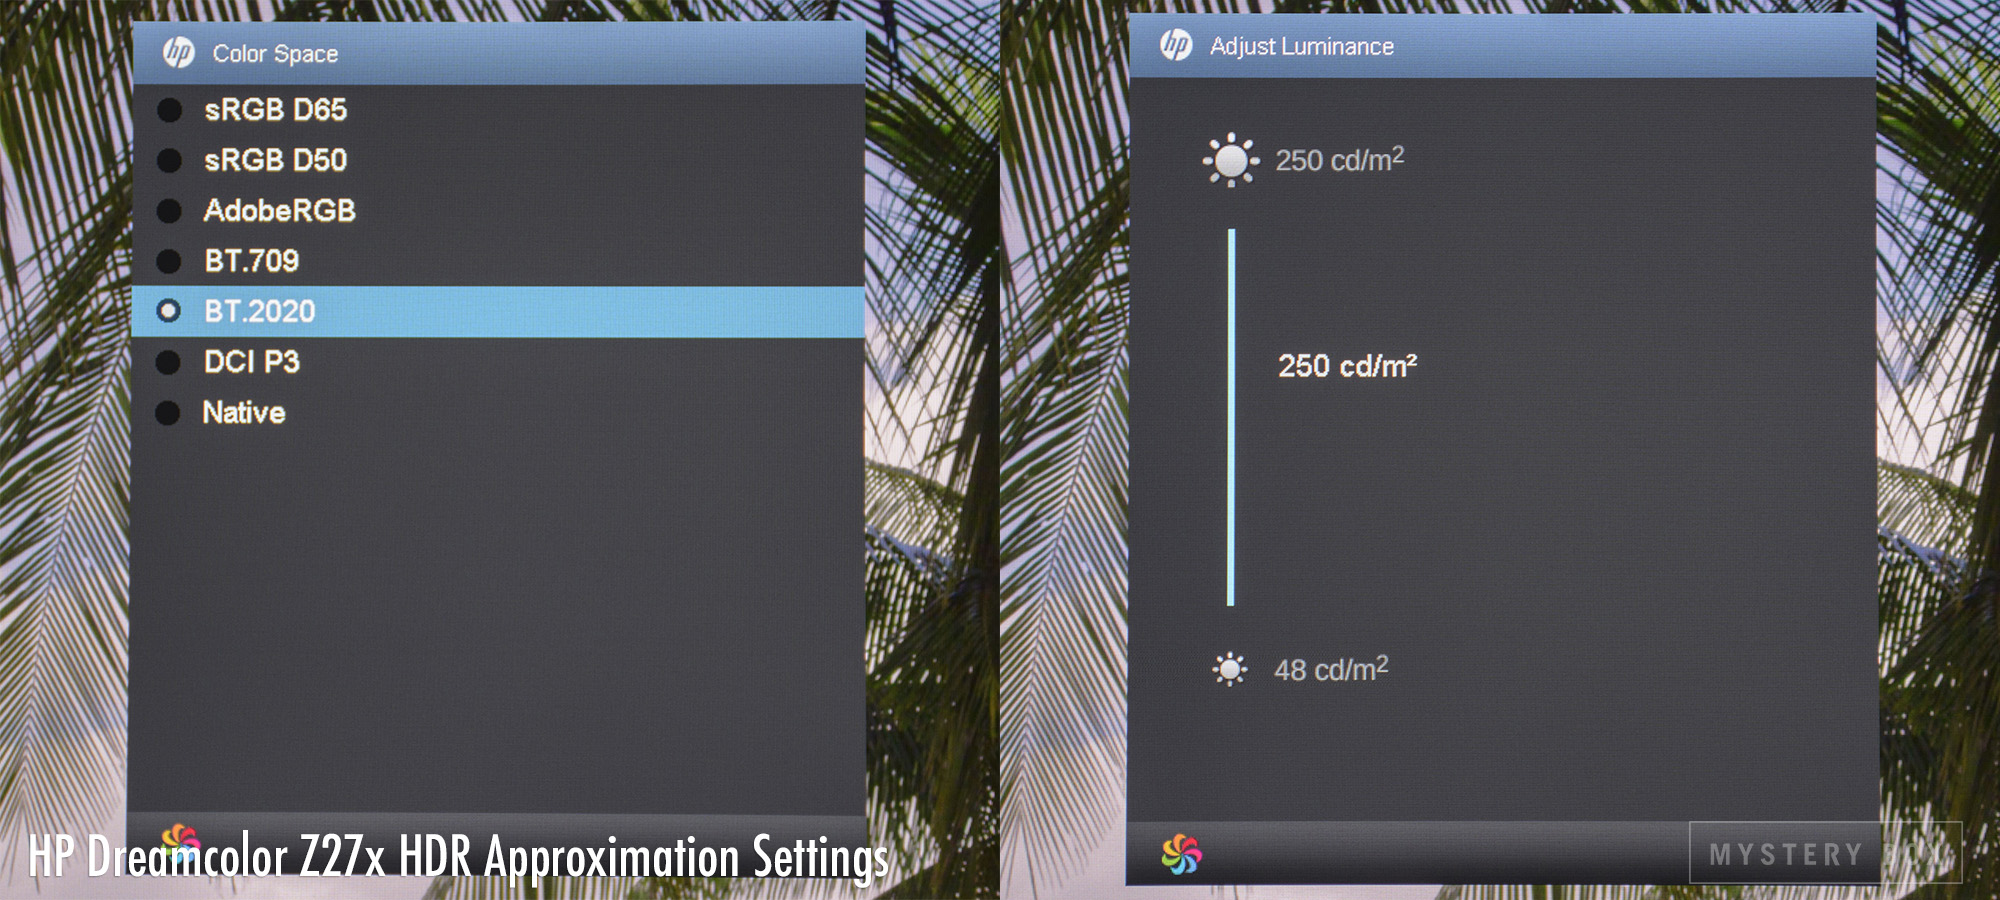 HP Dreamcolor Z27x HDR Approximation Settings